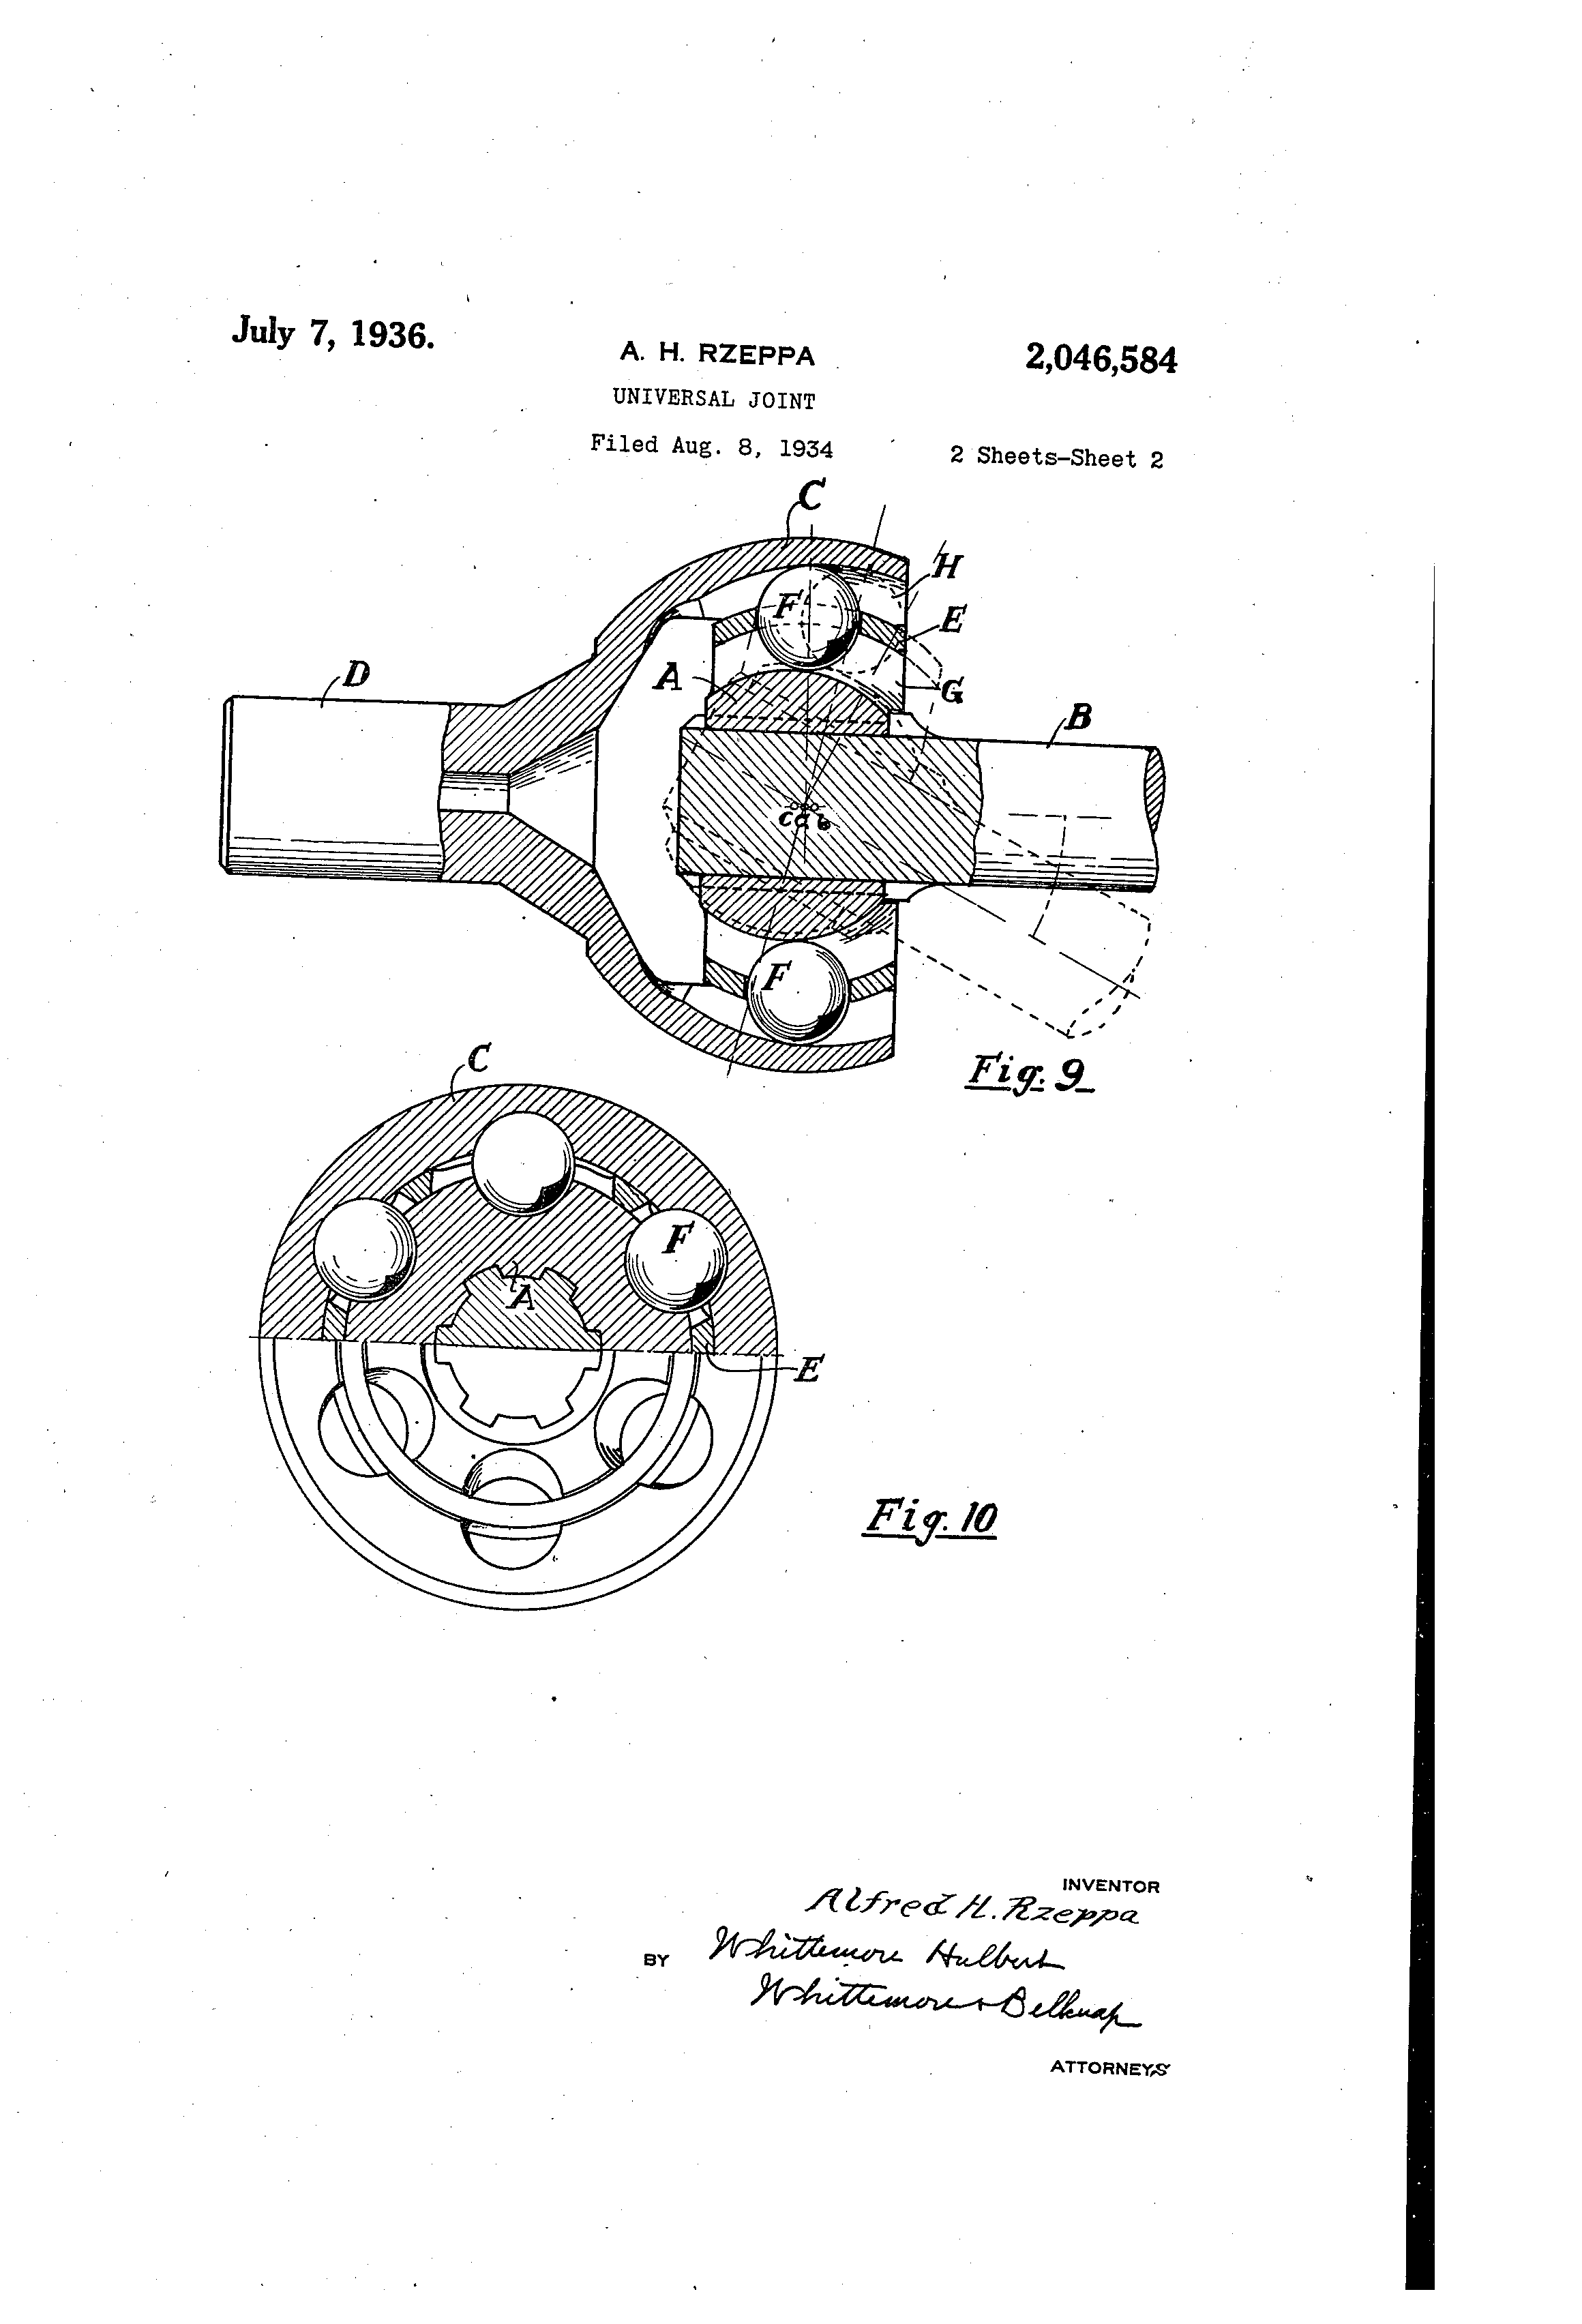 patent joint assignment